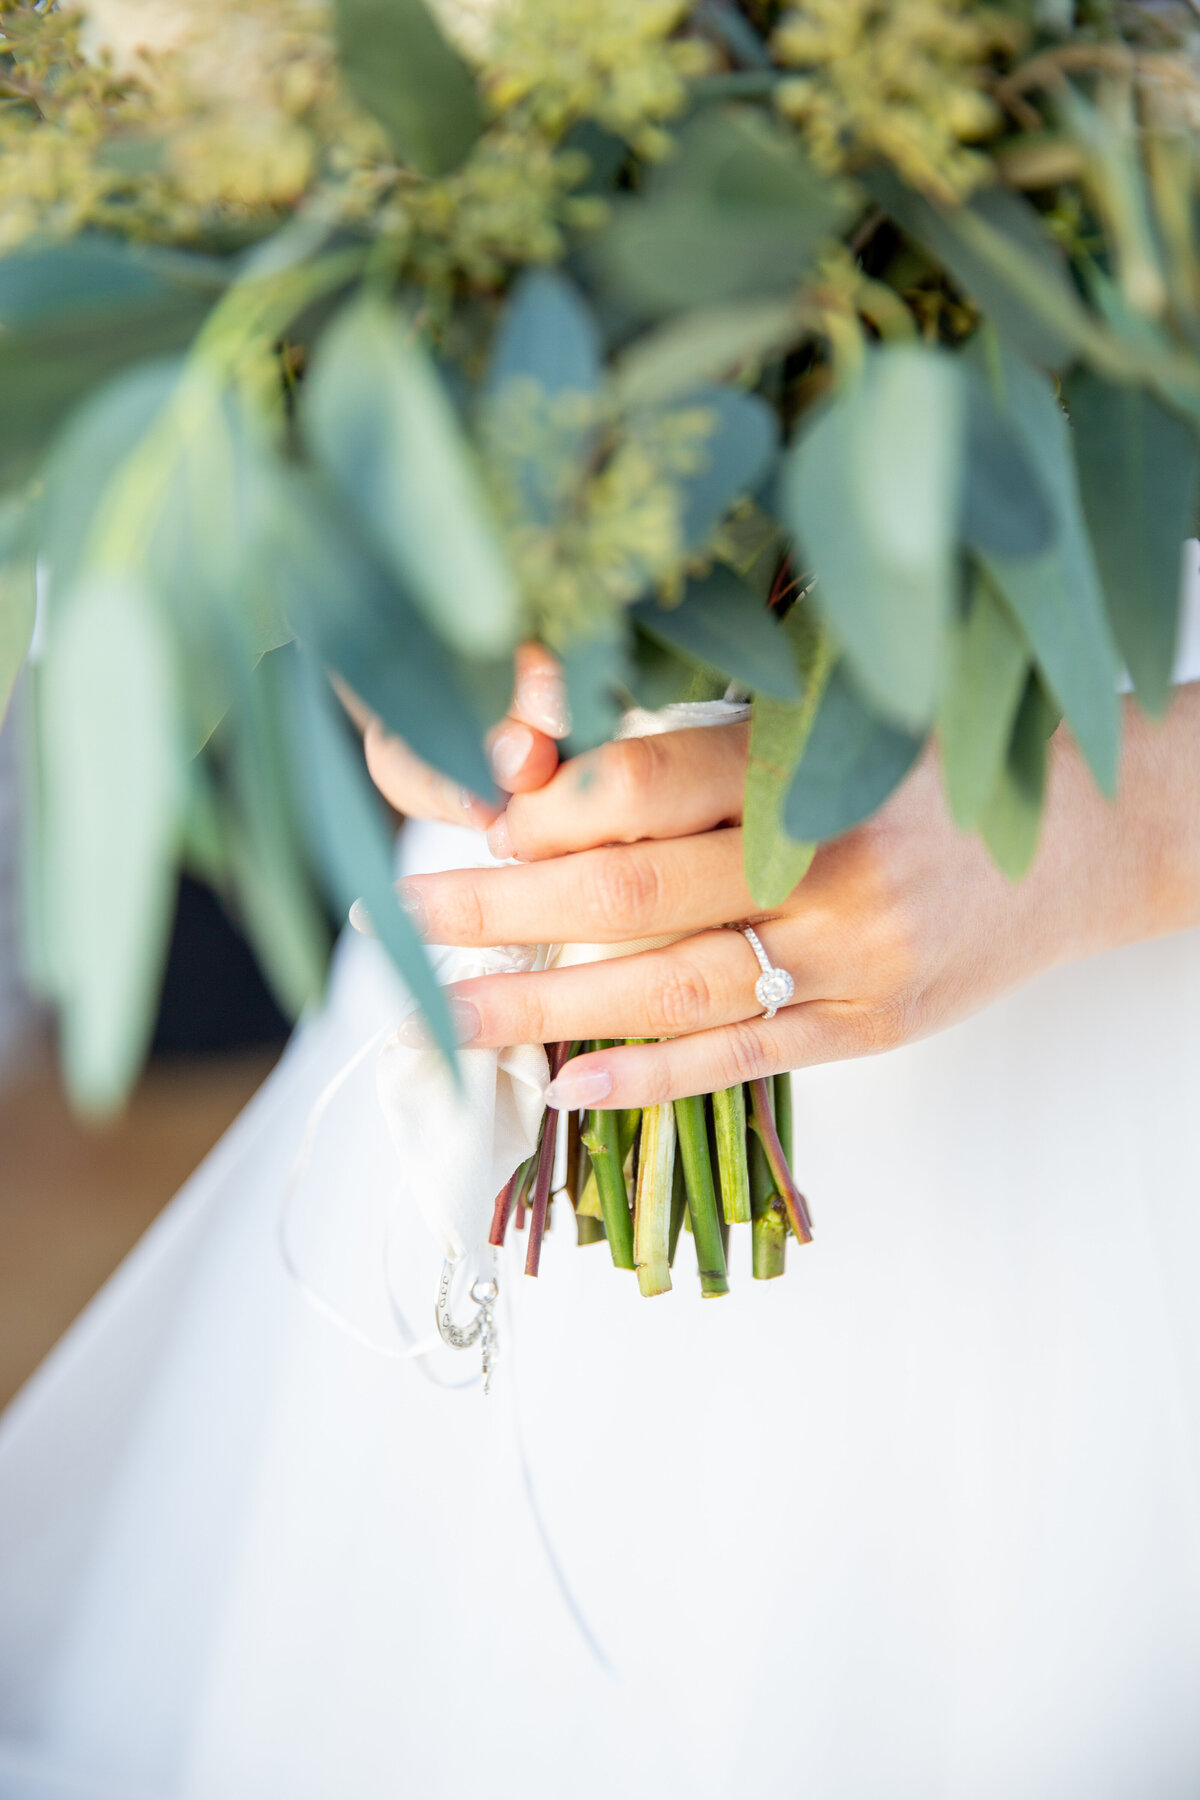 Close Up of Bride's Wedding Ring Holding Her Bouquet